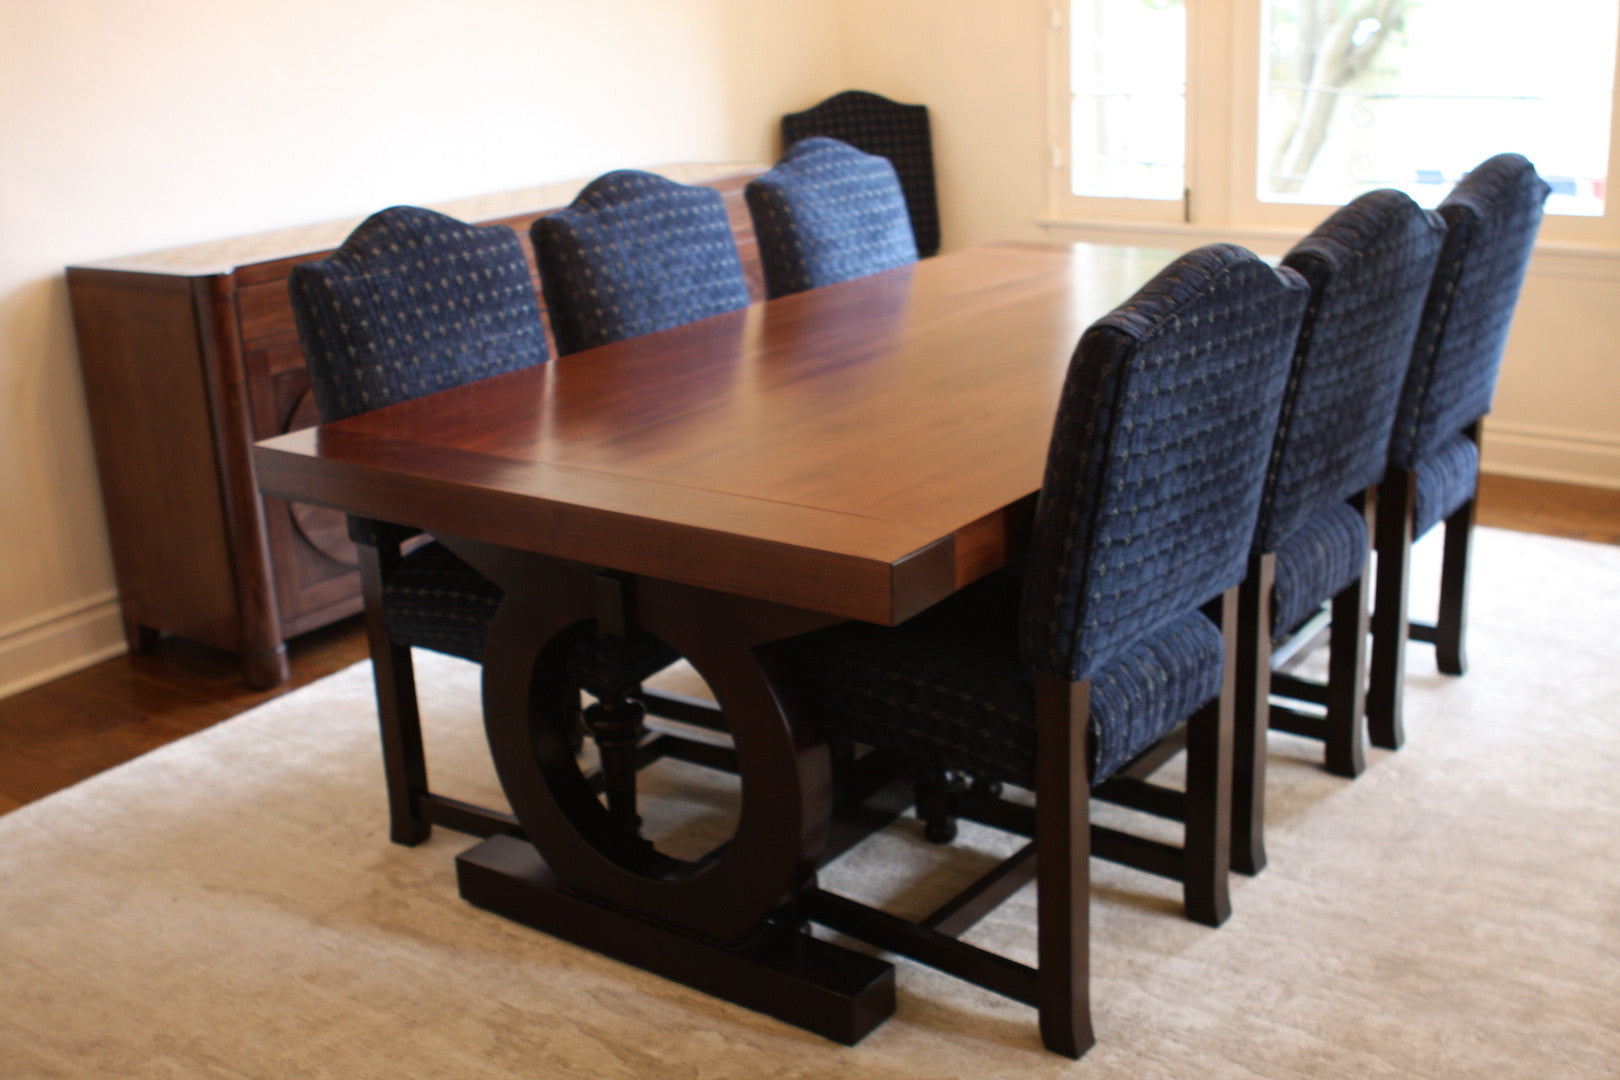 Custom Spanish Dining Table - Upholstered Chairs - Tile Top Buffet